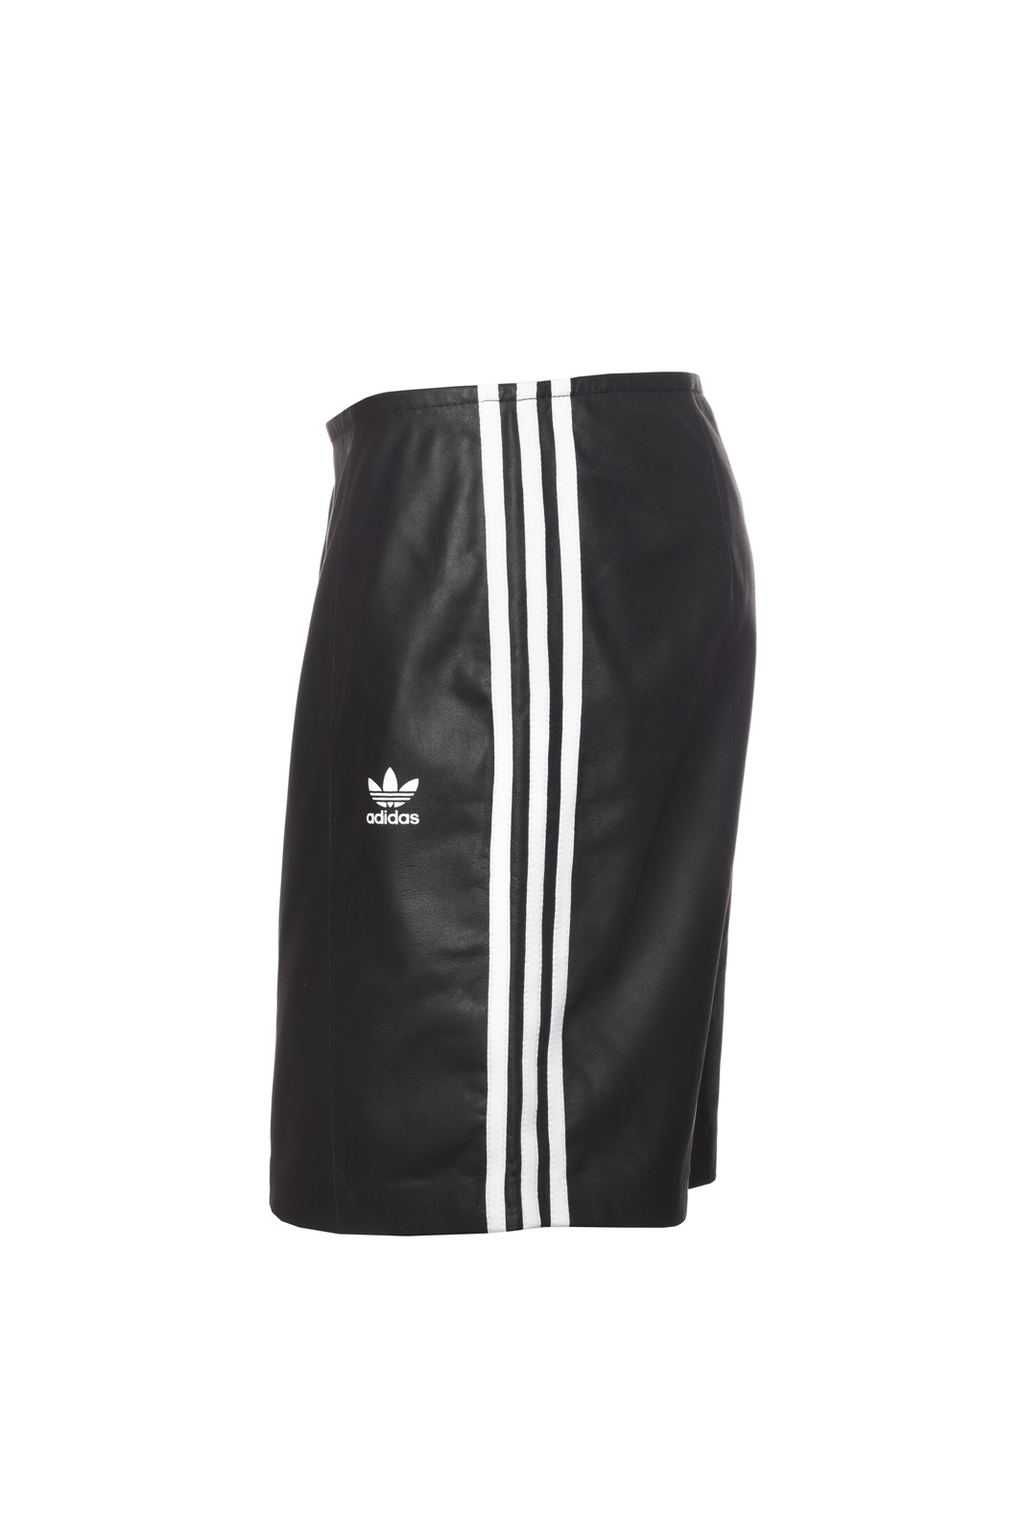 a893ce6f6 adidas Originals 3-Stripes Leather Skirt – Brands24